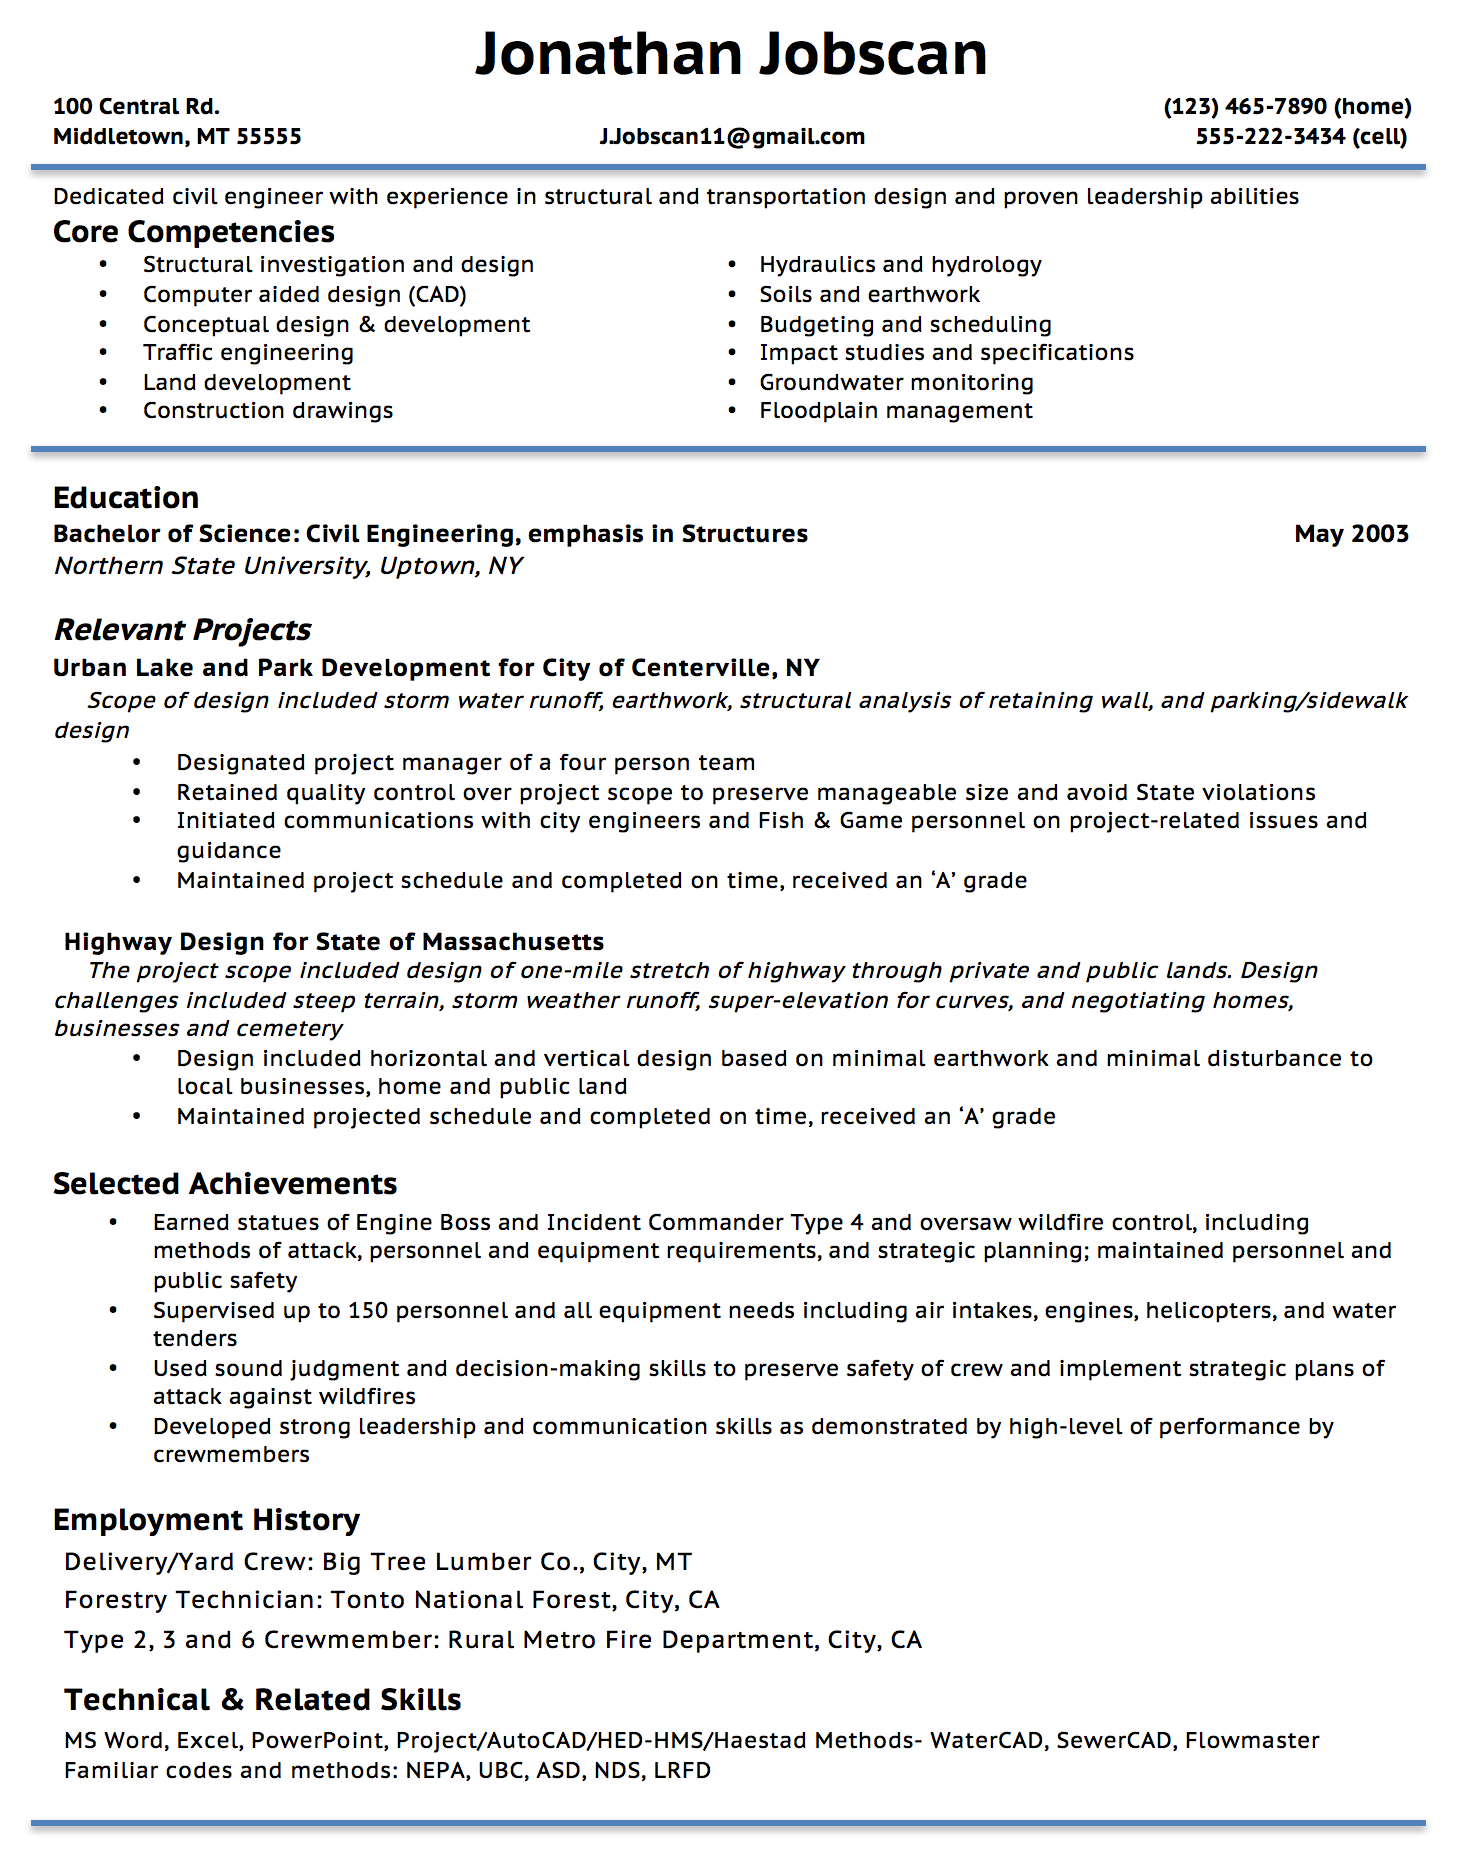 Opposenewapstandardsus  Surprising Resume Writing Guide  Jobscan With Remarkable Example Of A Functional Resume Format With Nice Game Designer Resume Also Physician Assistant Resume Sample In Addition Operations Resume And Resume Sample Templates As Well As Best Word Resume Template Additionally What Should You Include In A Resume From Jobscanco With Opposenewapstandardsus  Remarkable Resume Writing Guide  Jobscan With Nice Example Of A Functional Resume Format And Surprising Game Designer Resume Also Physician Assistant Resume Sample In Addition Operations Resume From Jobscanco